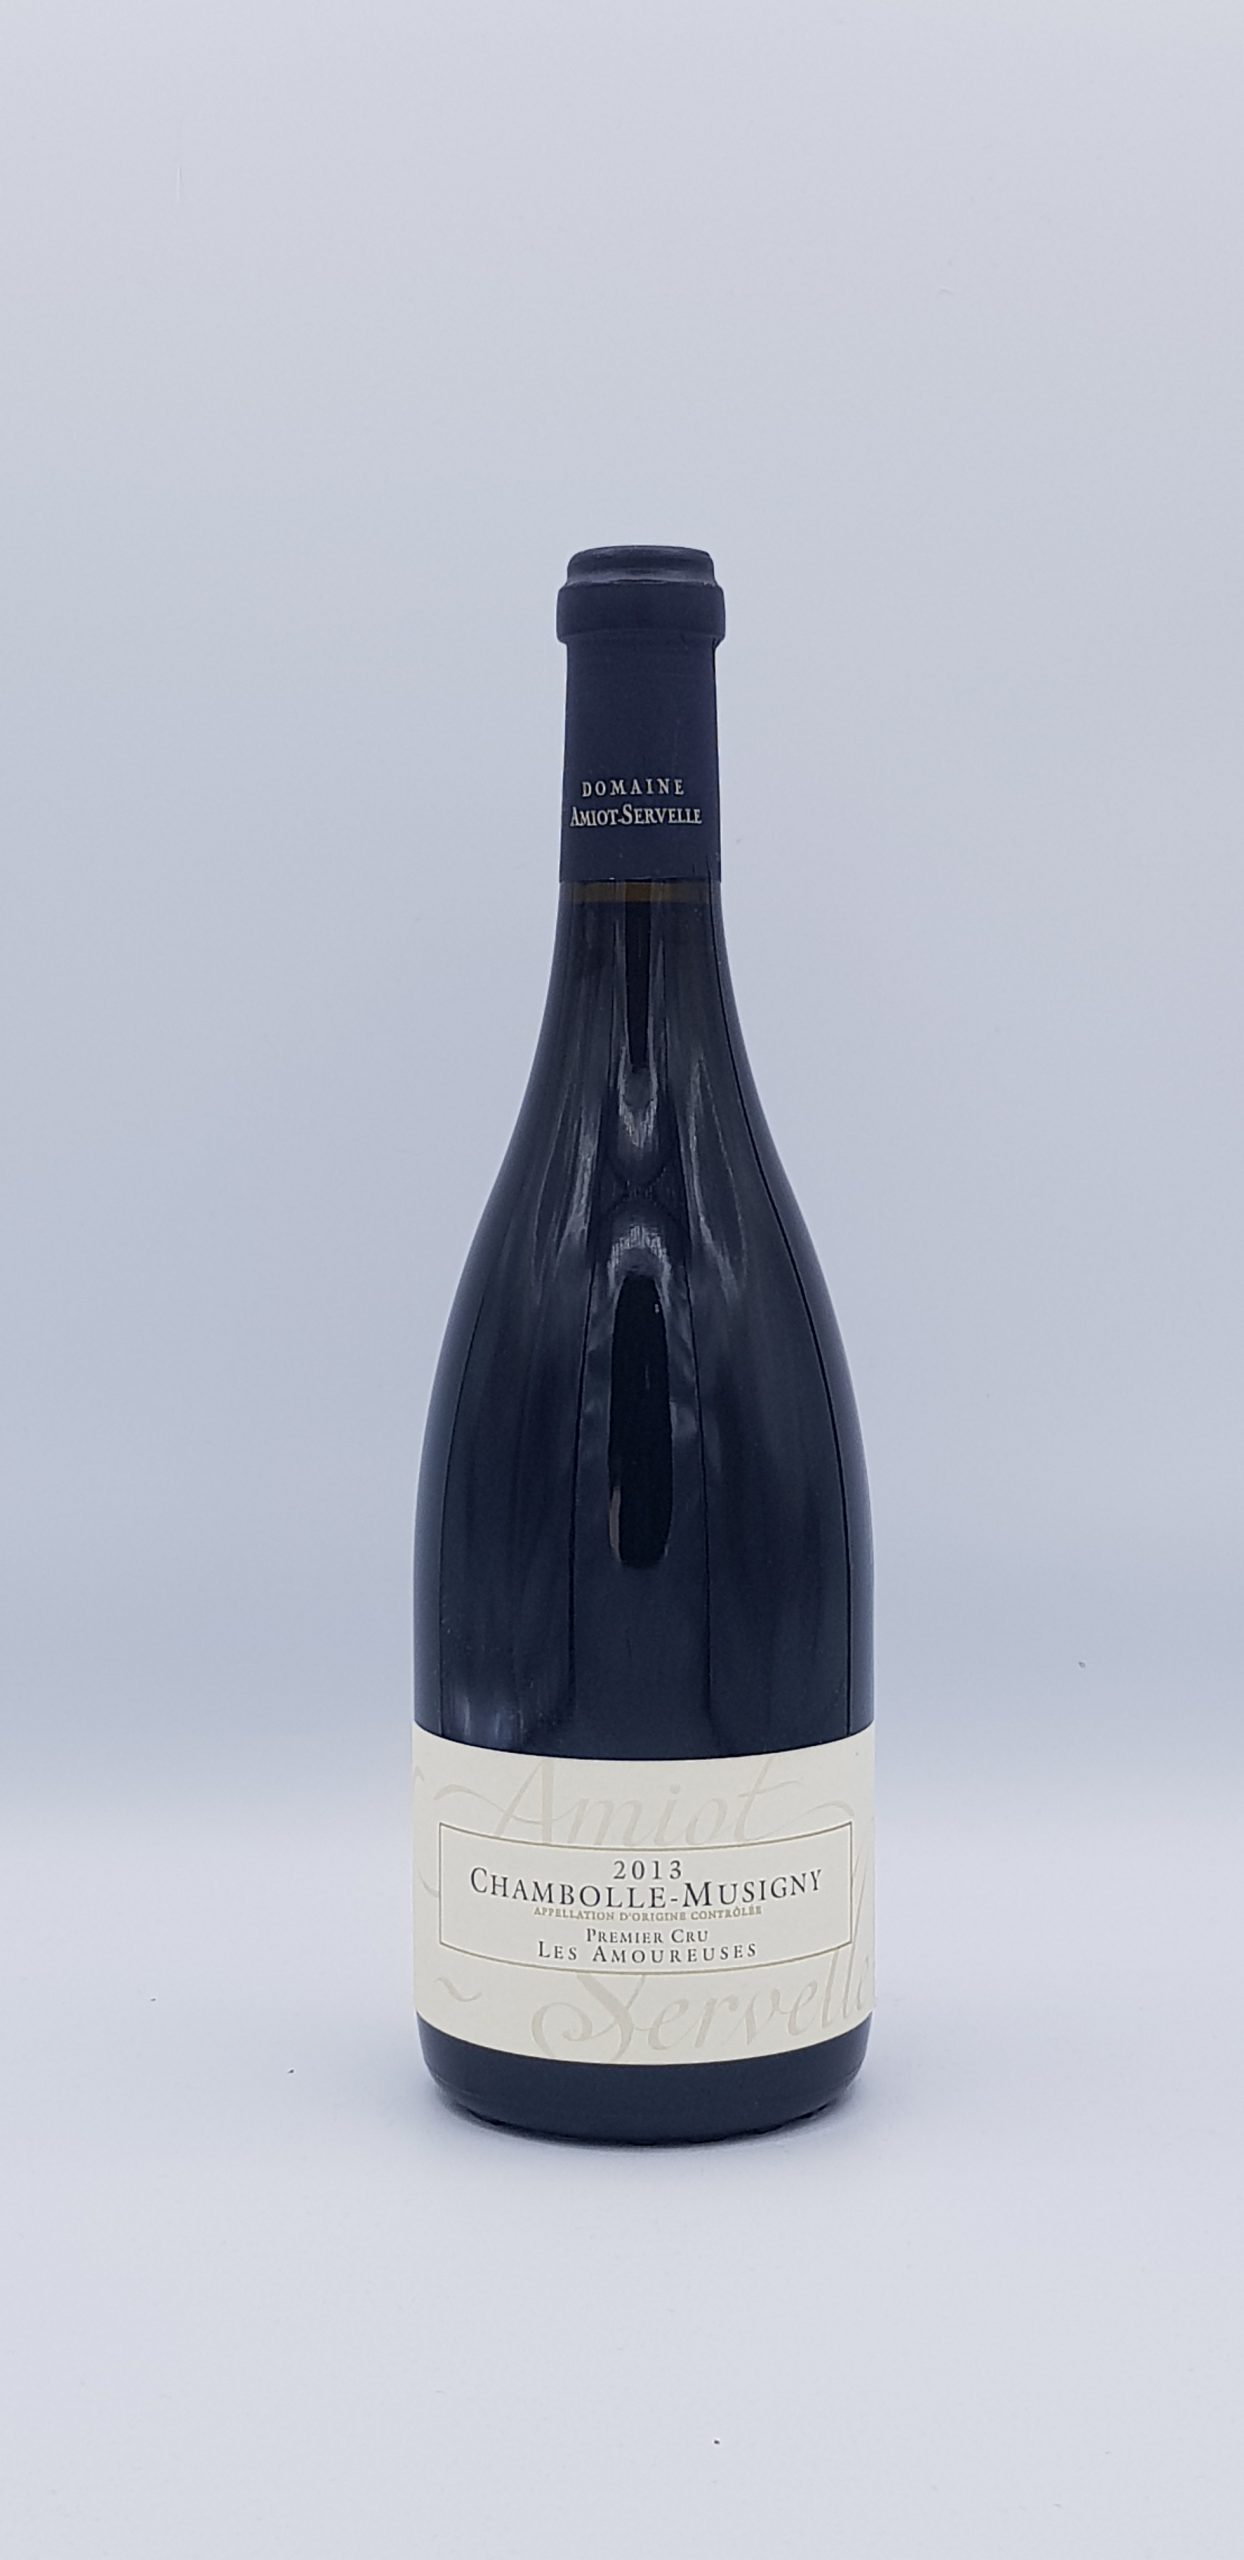 """Chambolle-Musigny 1 er cru """"Les Amoureuses"""" 2013"""